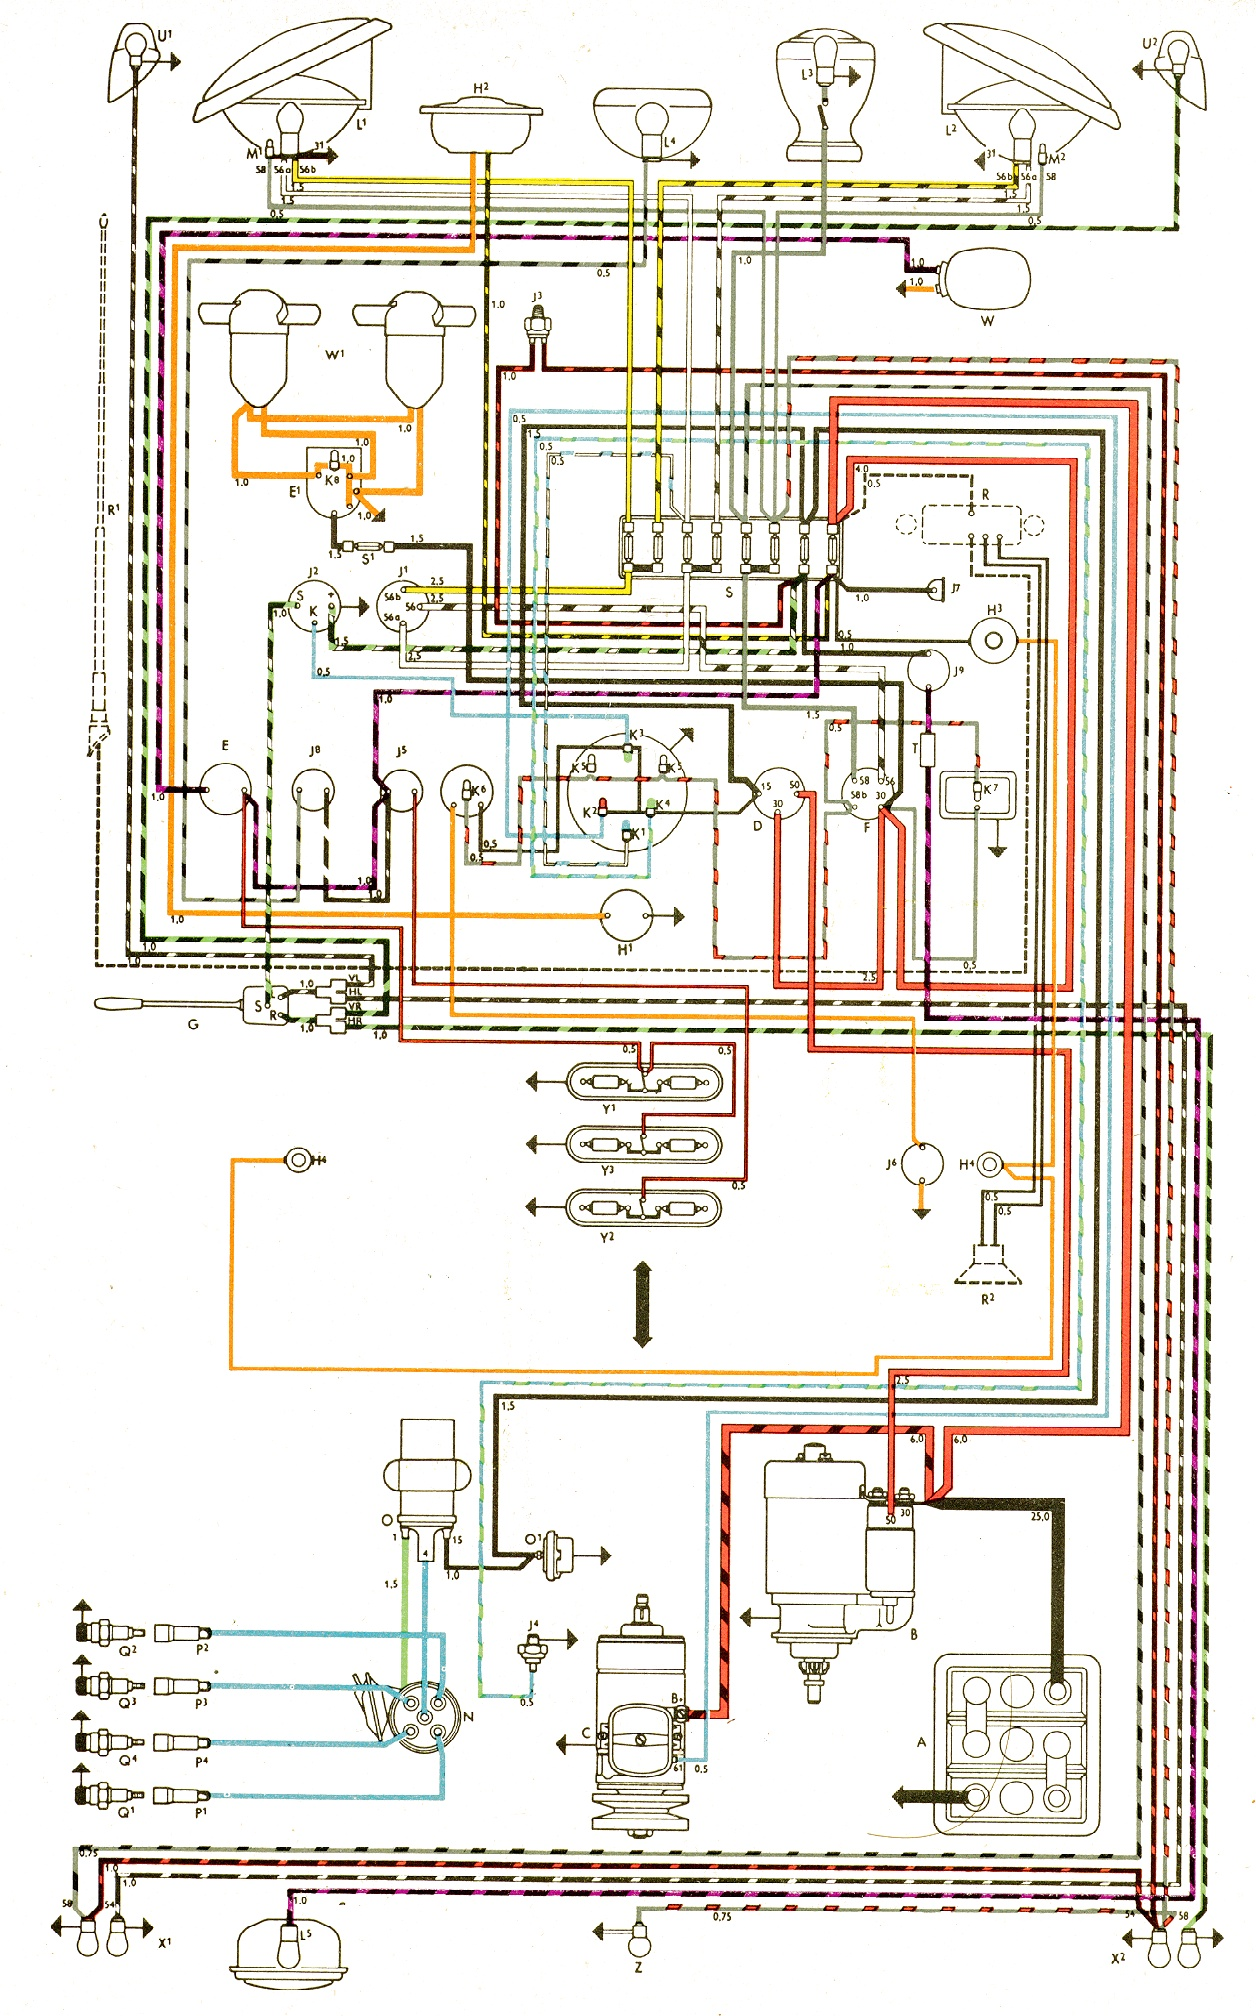 bus 62 vintagebus com vw bus (and other) wiring diagrams 1971 vw bus wiring diagram at bayanpartner.co